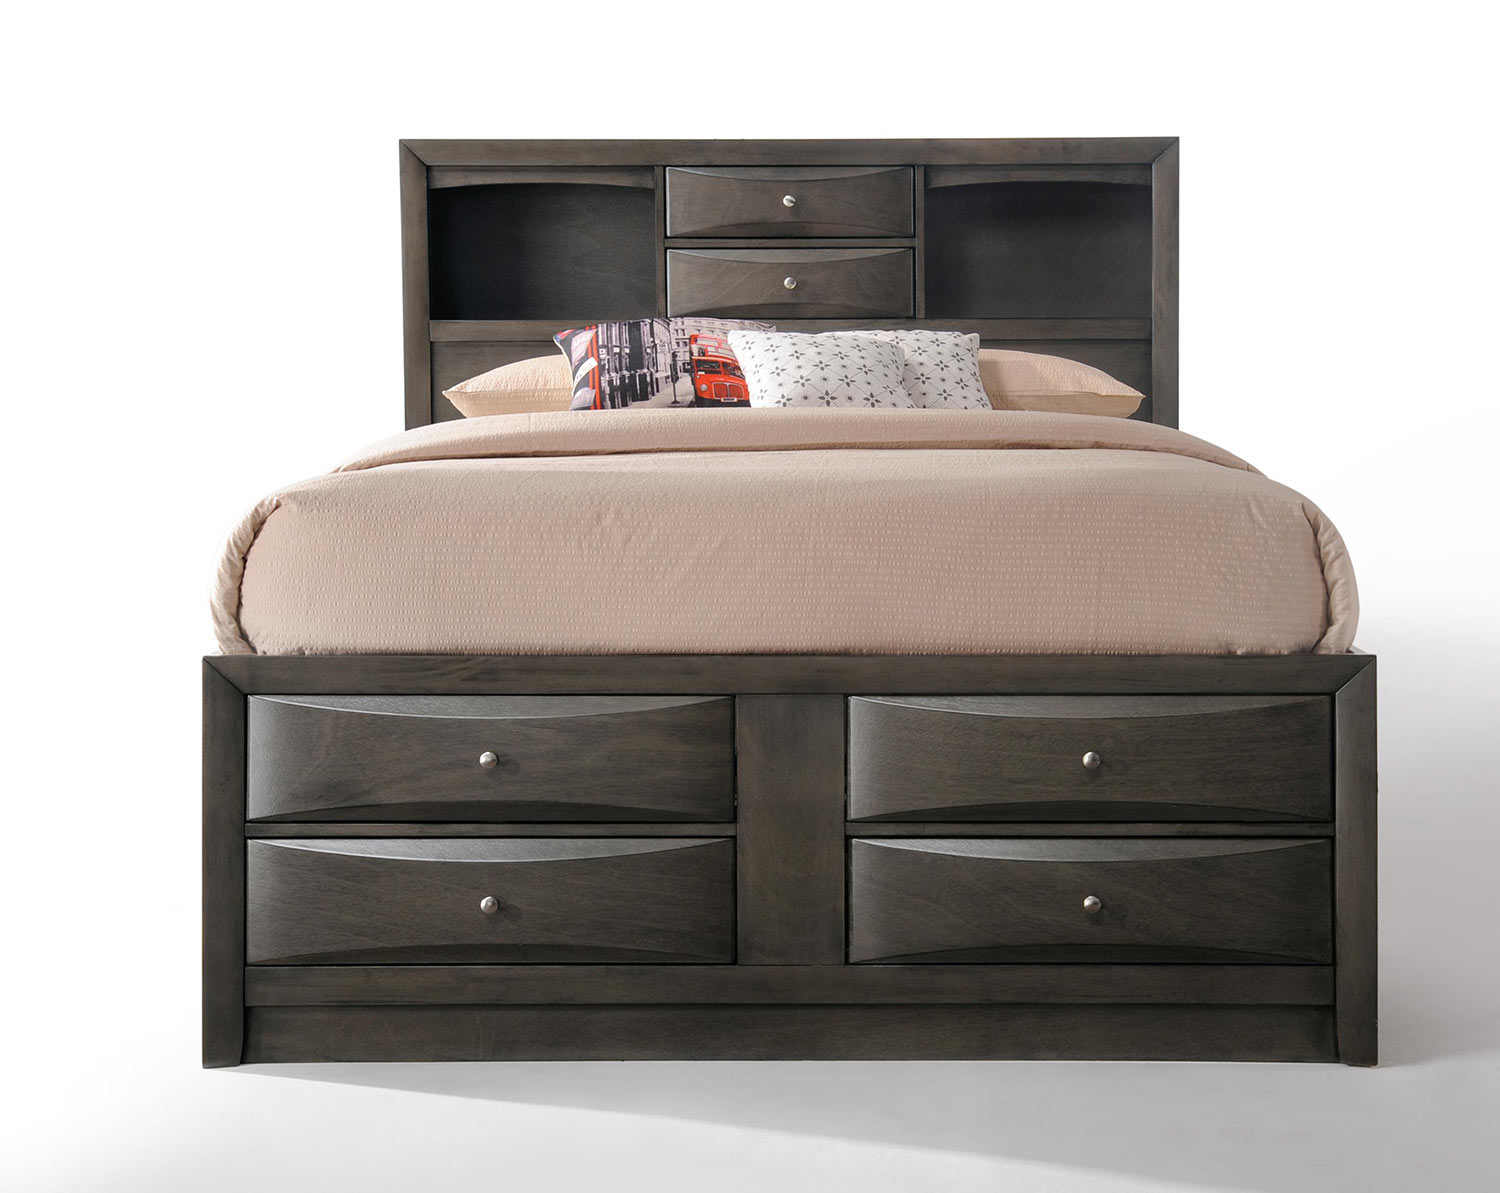 Acme Ireland Bed With Storage Gray Oak 22700q Bed At